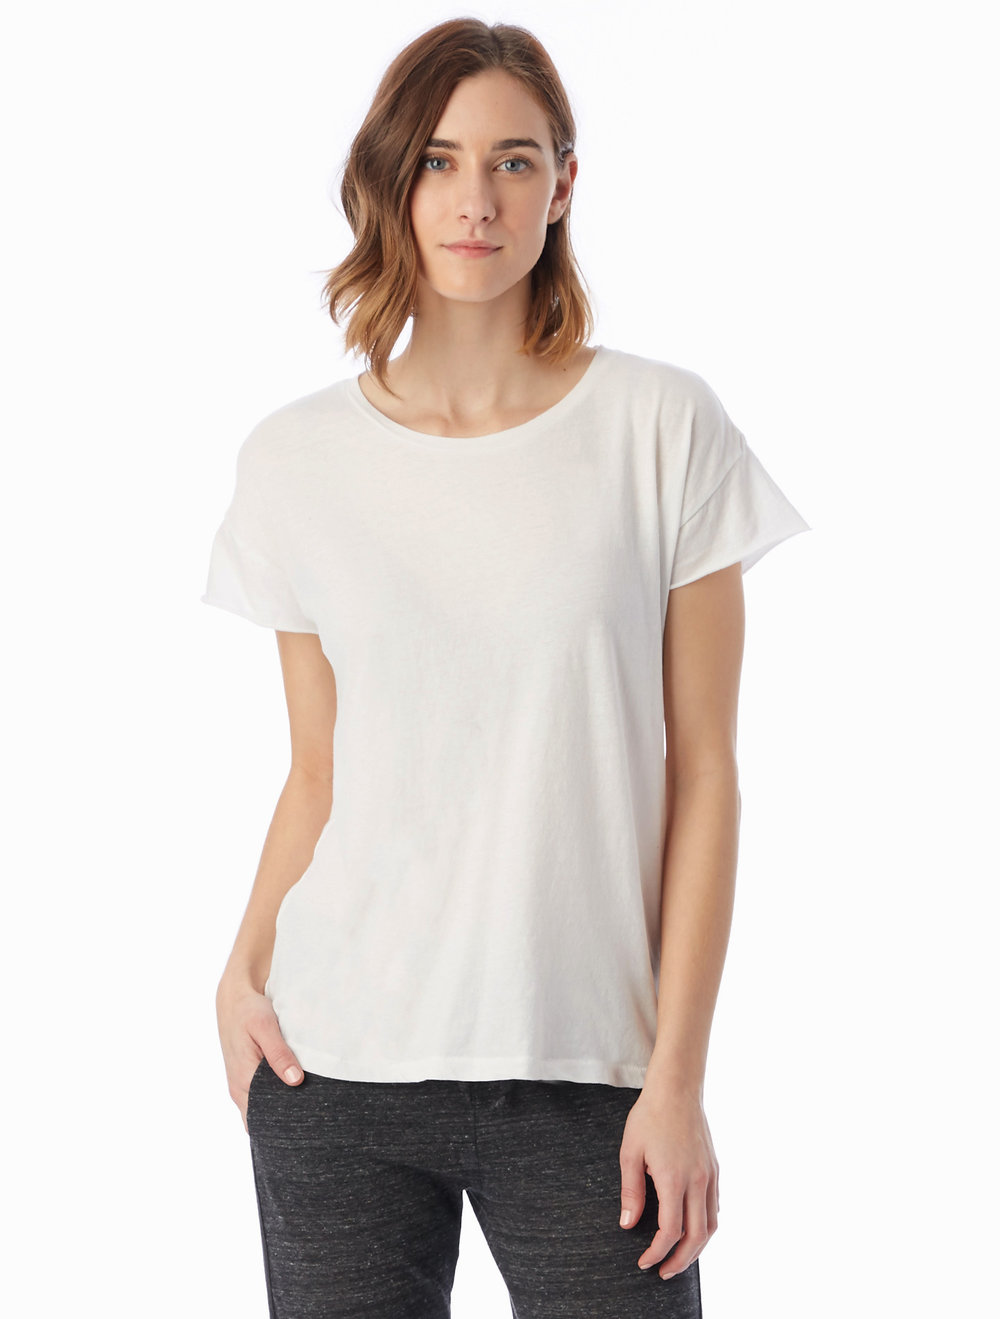 The Rocker Classic White Tee from Alternative Apparel